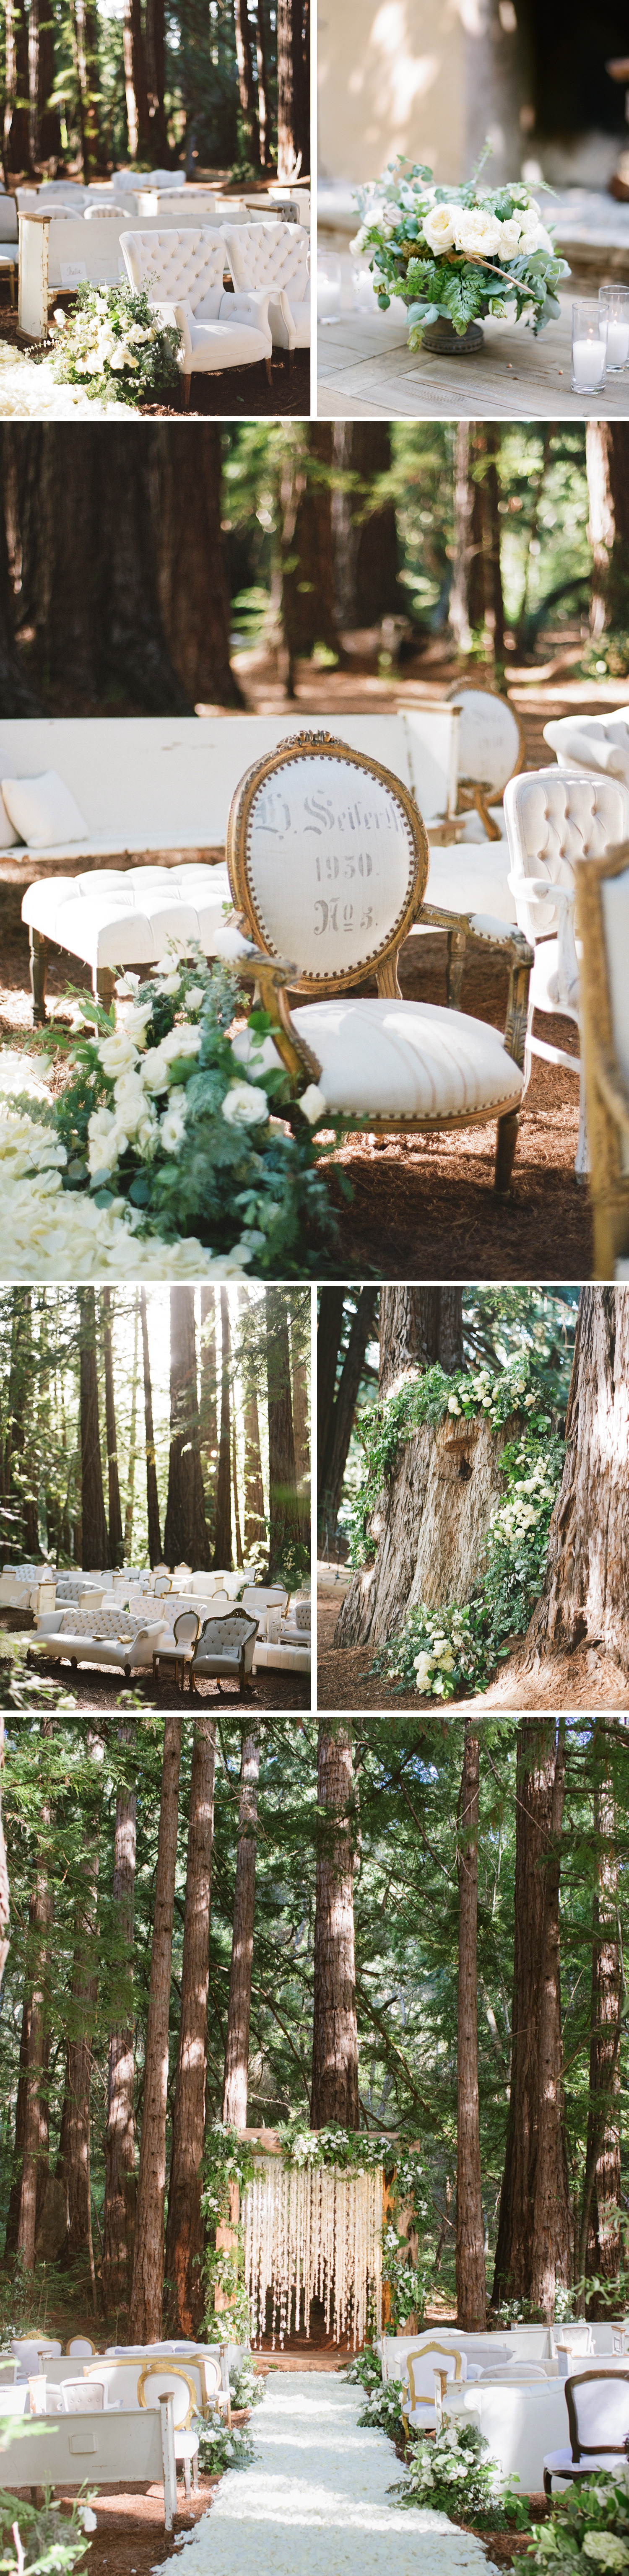 Eclectic white furniture make up the seating for a beautiful, dappled-sunlight ceremony space surrounded by towering redwood trees. The aisle is carpeted with white rose petals; photos by Sylvie Gil